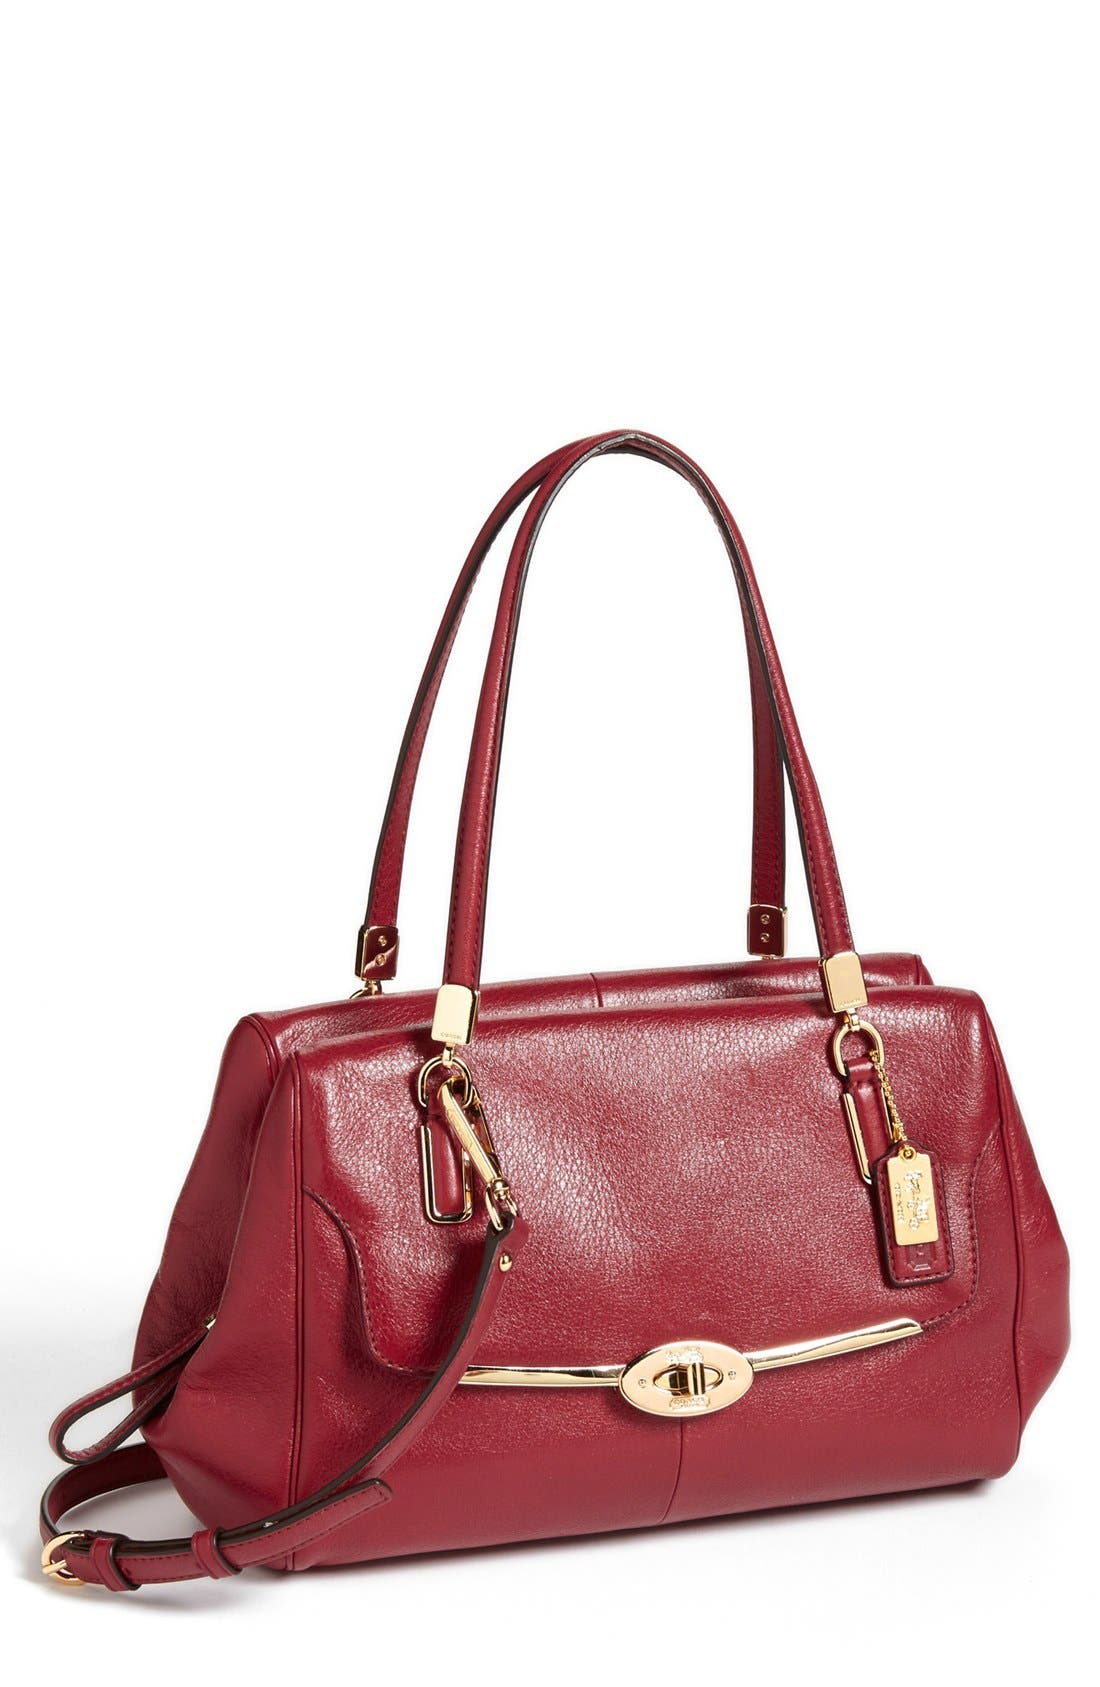 Main Image - COACH 'Madison' Leather Crossbody Bag